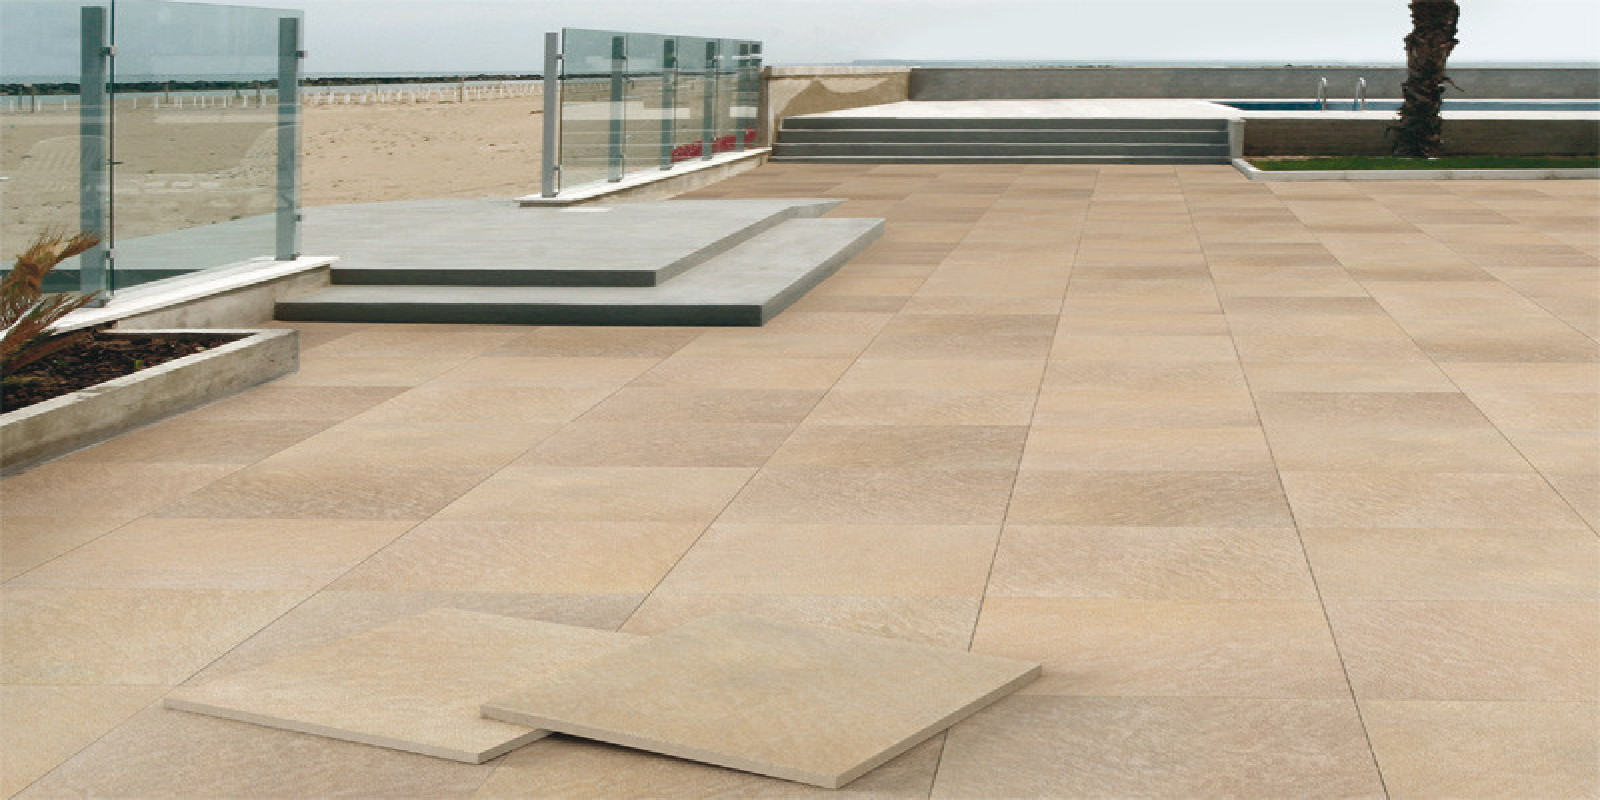 Seo outdoor pavements thin tiles for laying over existing surfaces dailygadgetfo Choice Image